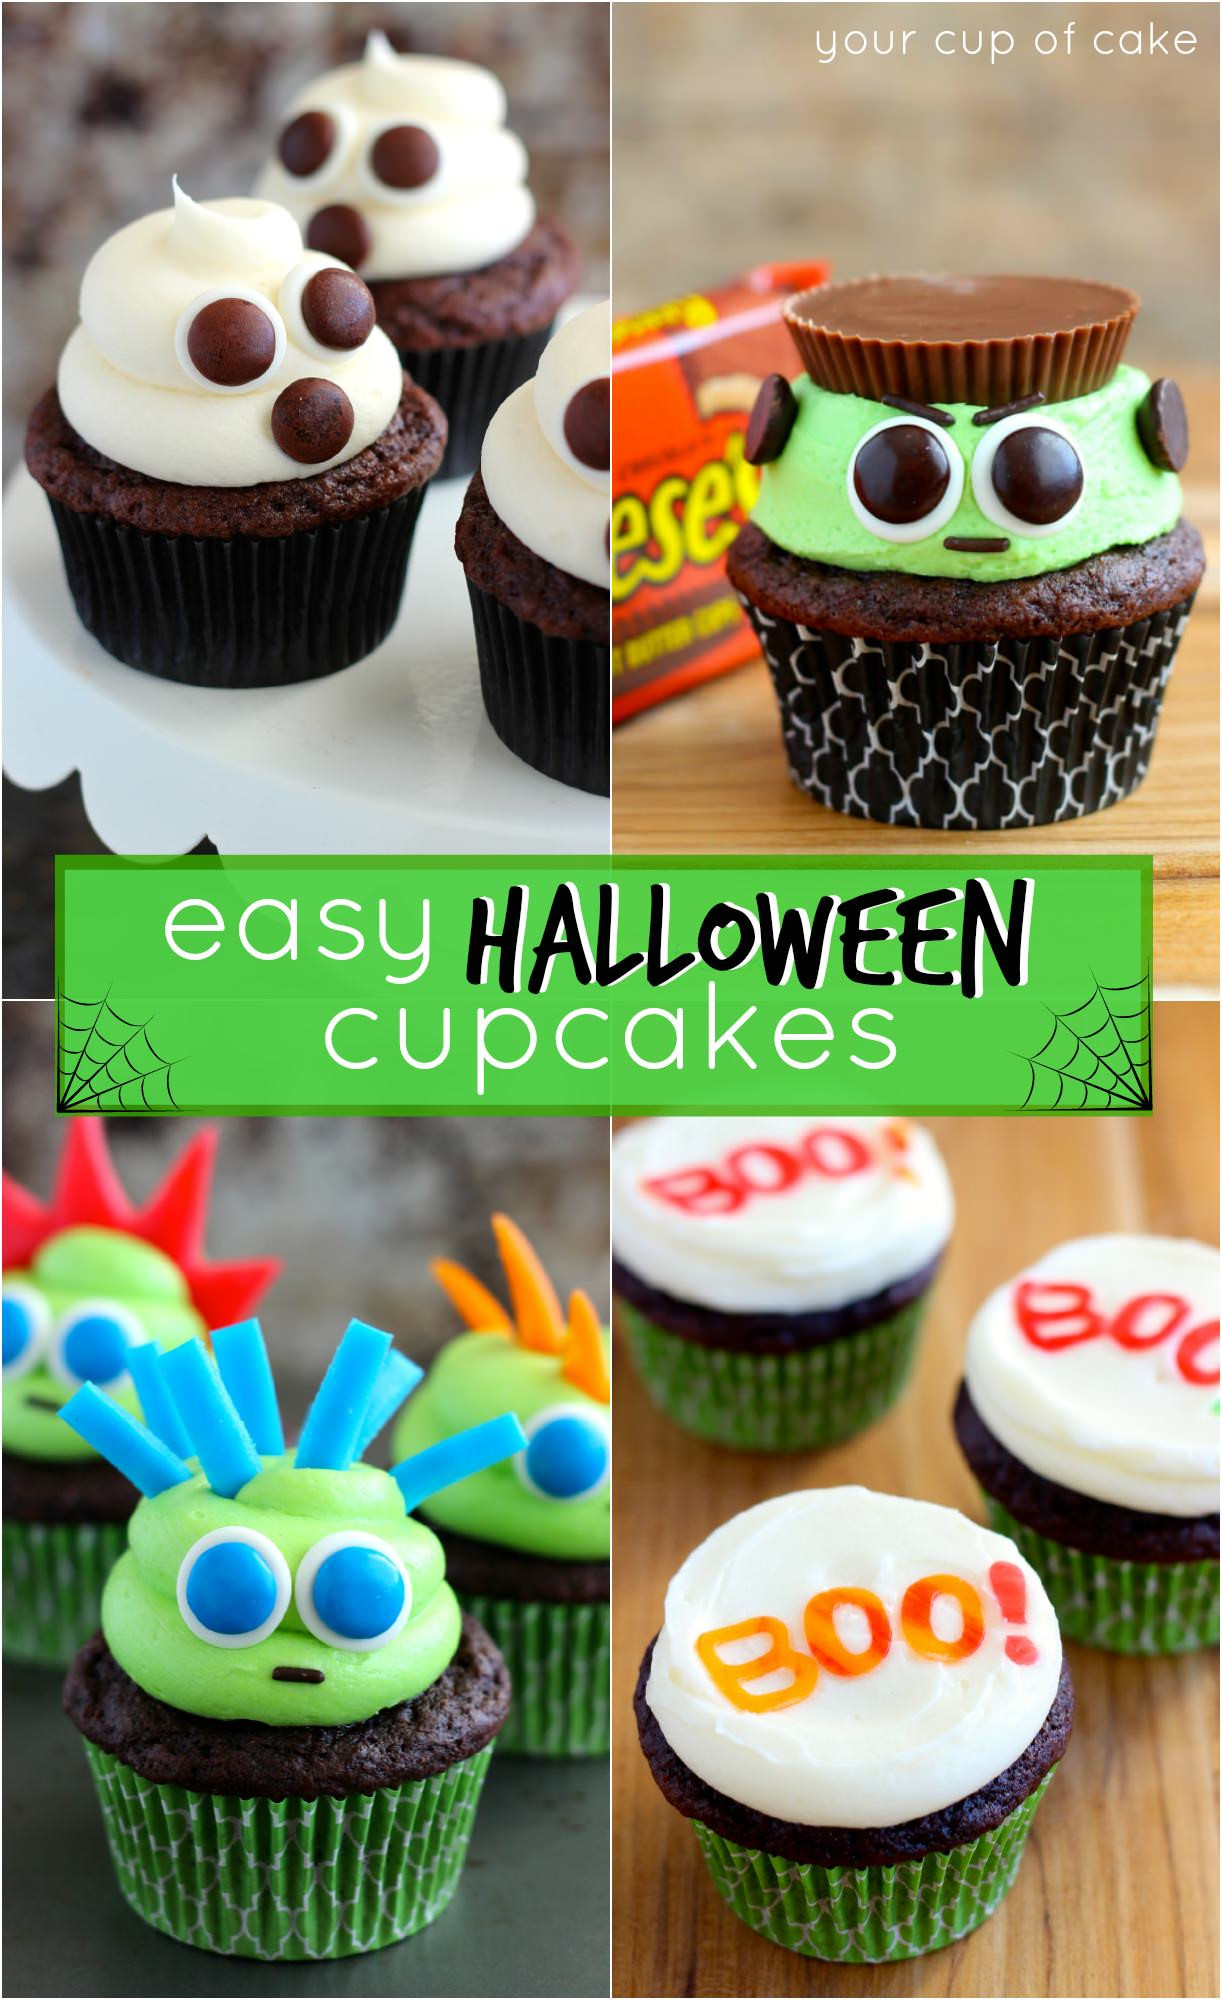 Easy Halloween Cakes Ideas  Easy Halloween Cupcake Ideas Your Cup of Cake